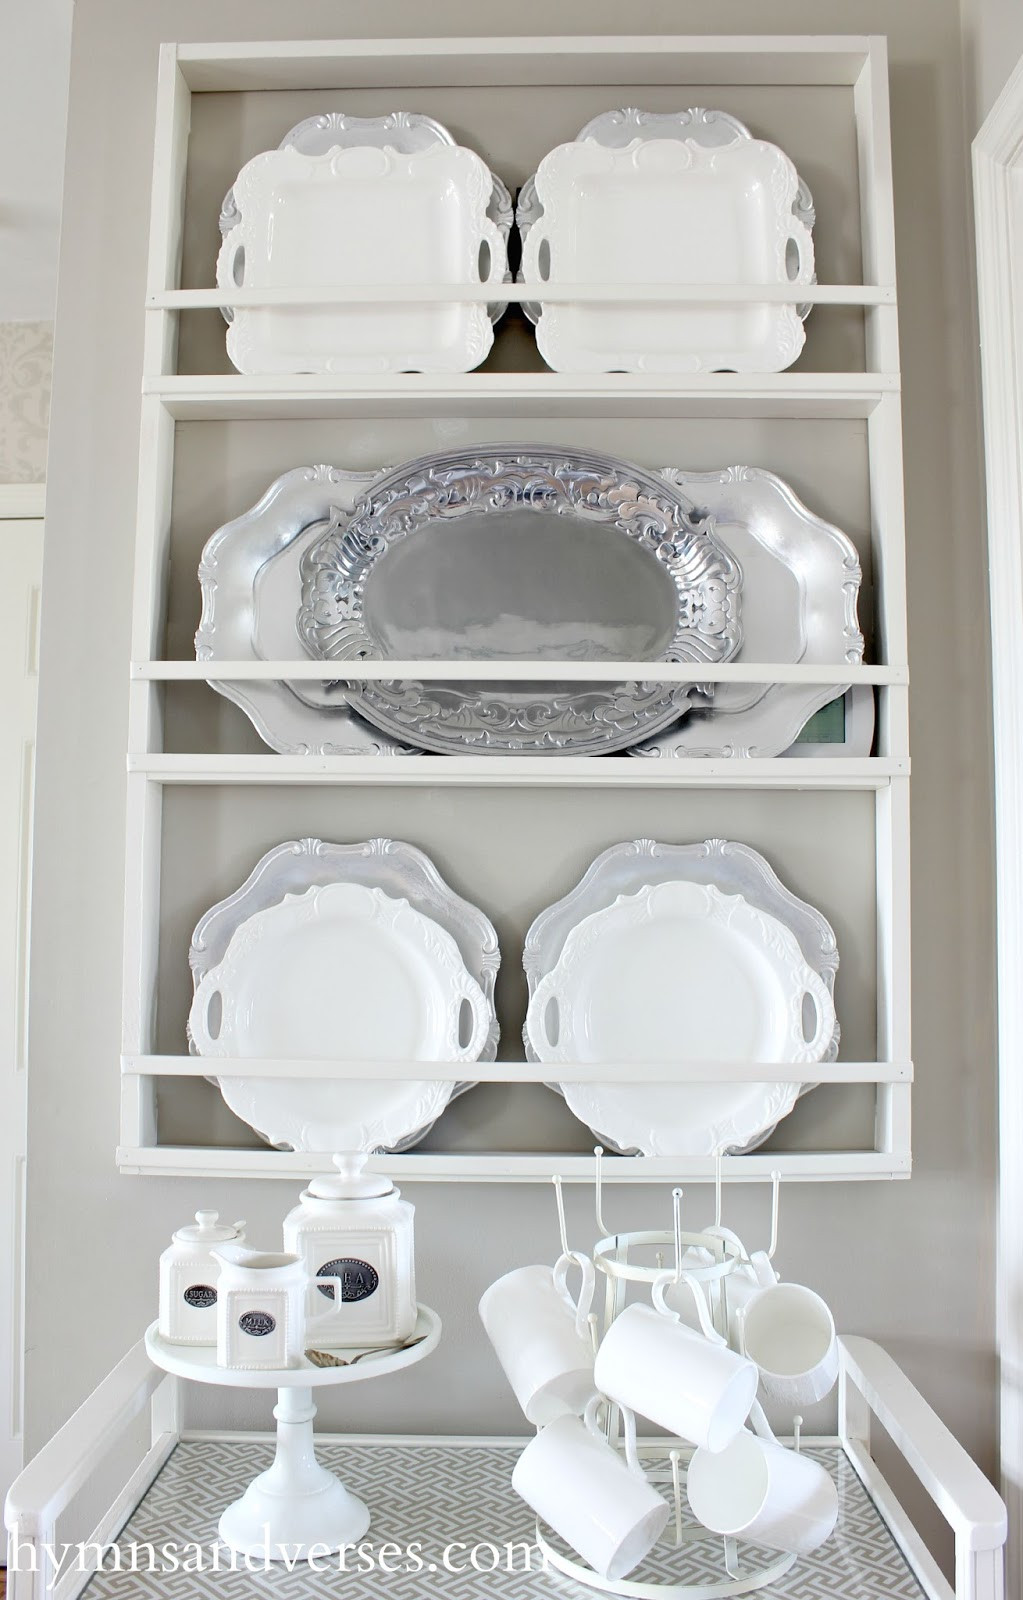 Best ideas about DIY Plate Rack . Save or Pin Build Your Own DIY Plate Rack Easy Plans Hymns and Verses Now.